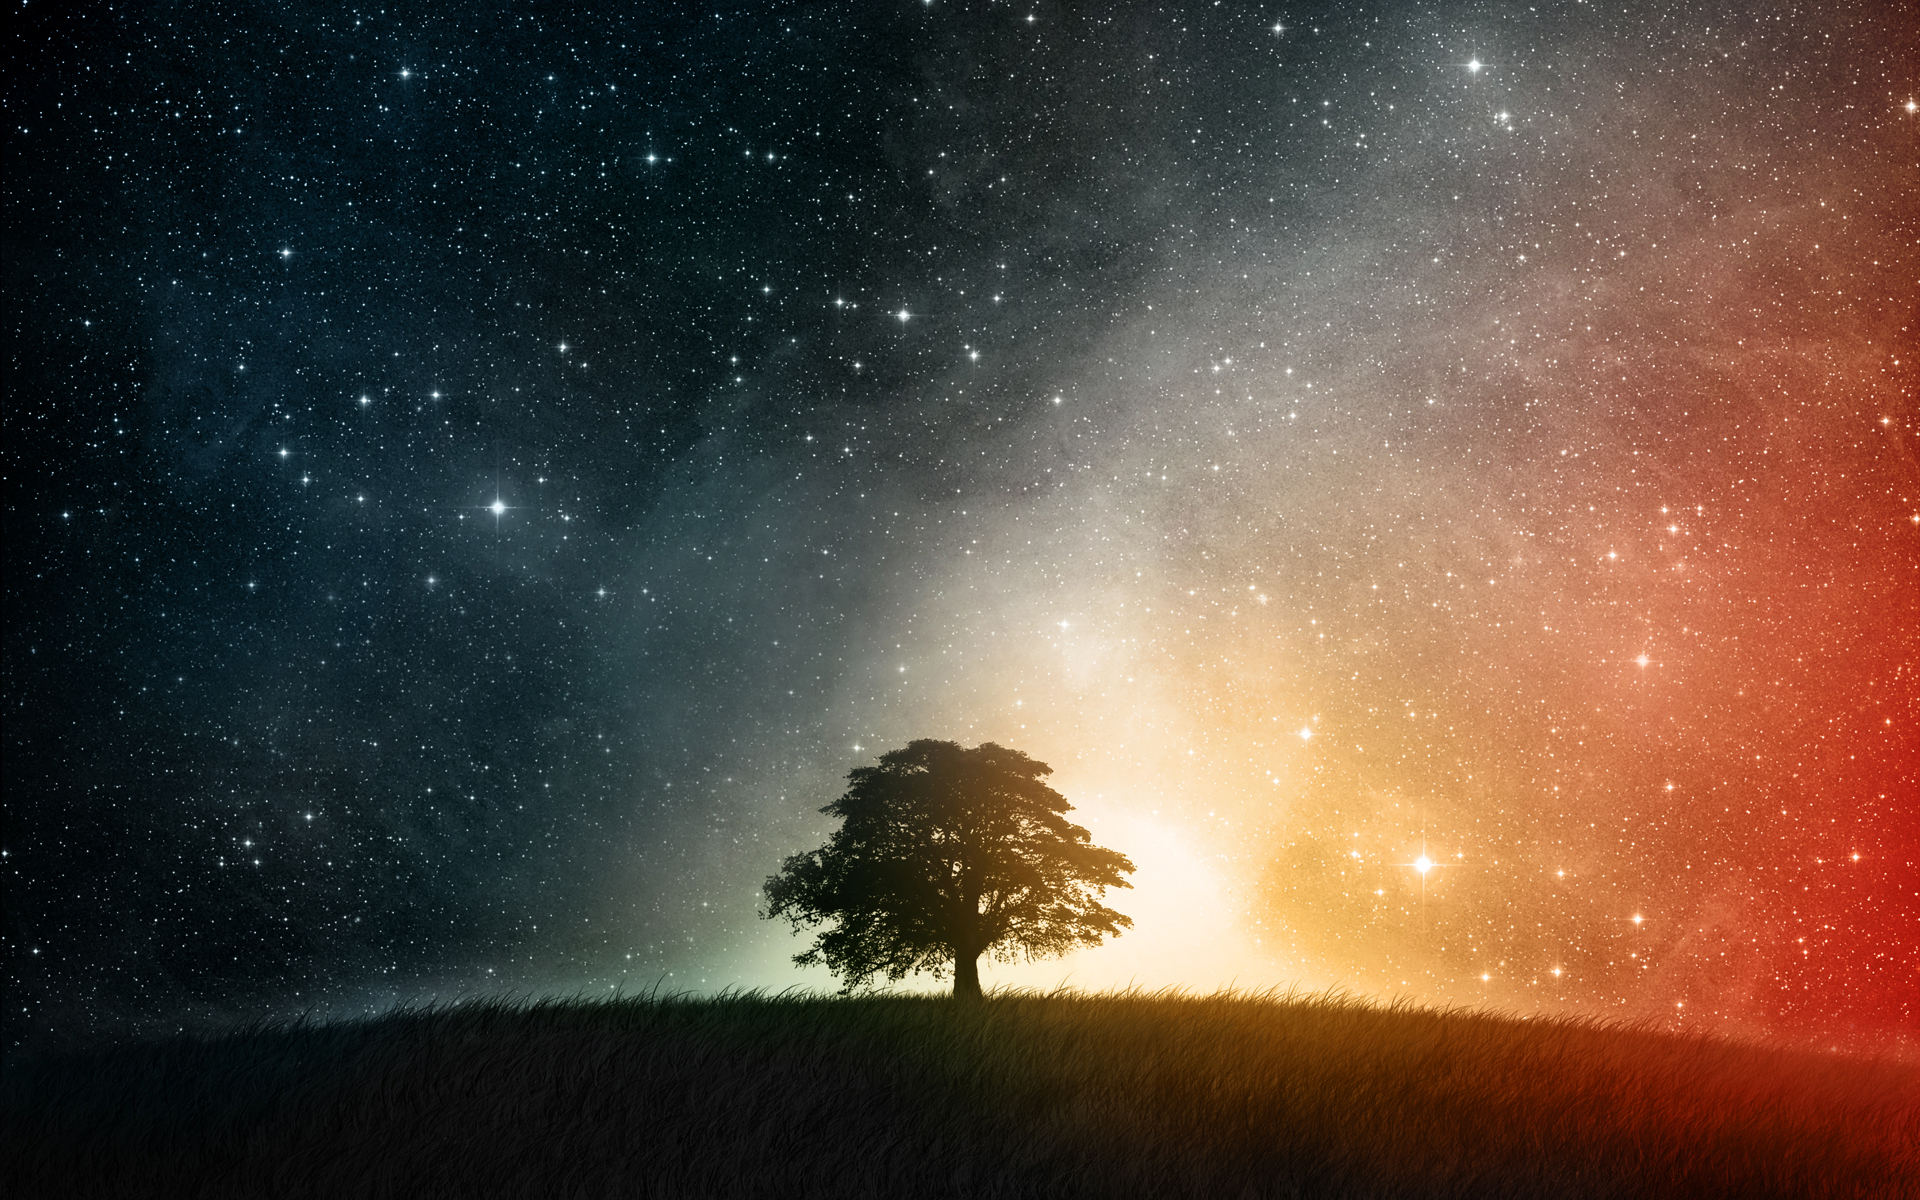 Earth - A Dreamy World  - Cgi - Landscape - Field - Grass - Sky - Light - Stars - Colors - Tree - Cosmos - Space Wallpaper